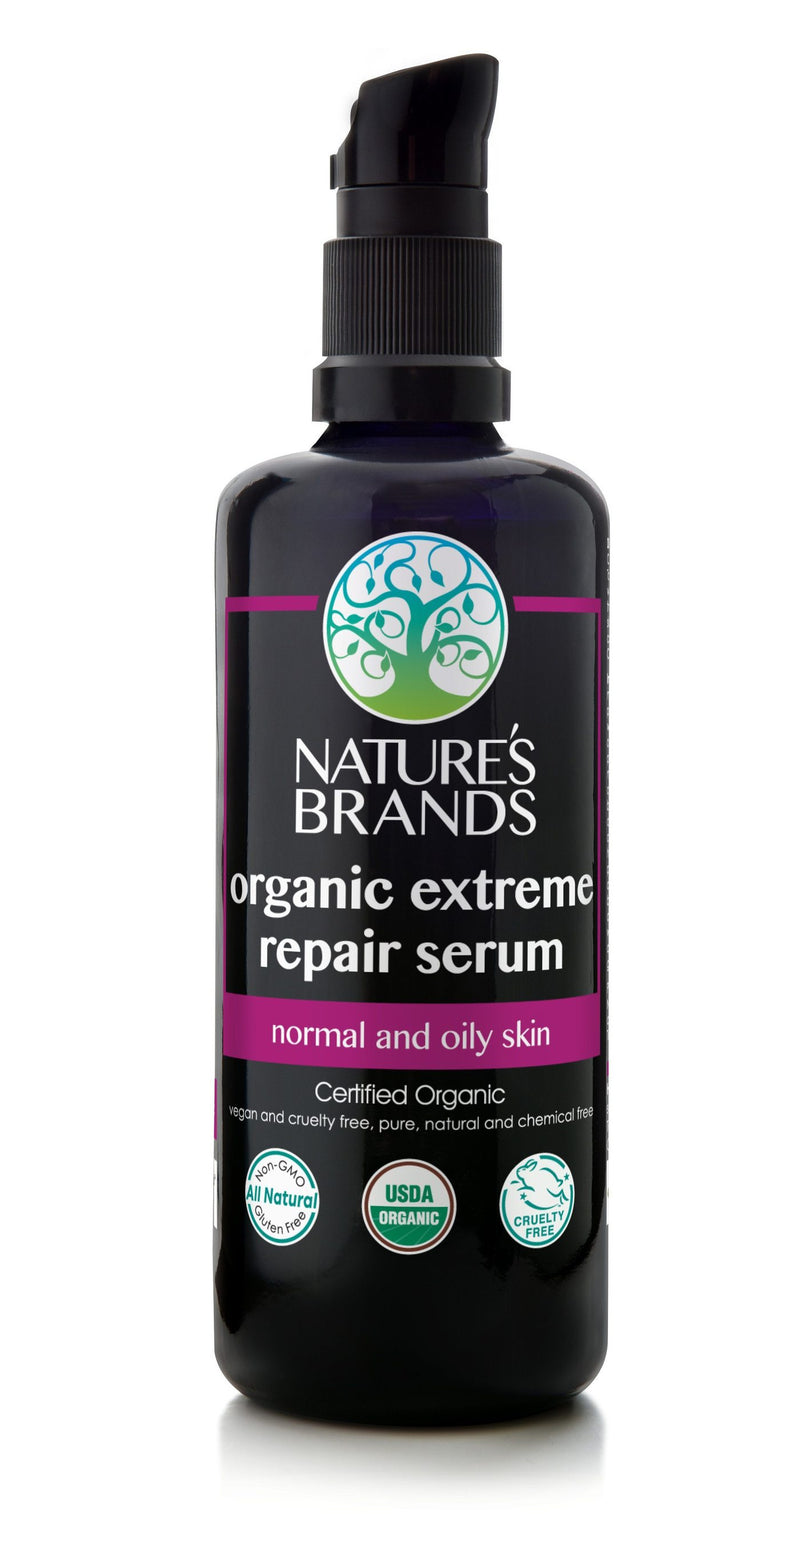 Herbal Choice Mari Organic Extreme Repair Serum - Herbal Choice Mari Organic Extreme Repair Serum - Herbal Choice Mari Organic Extreme Repair Serum